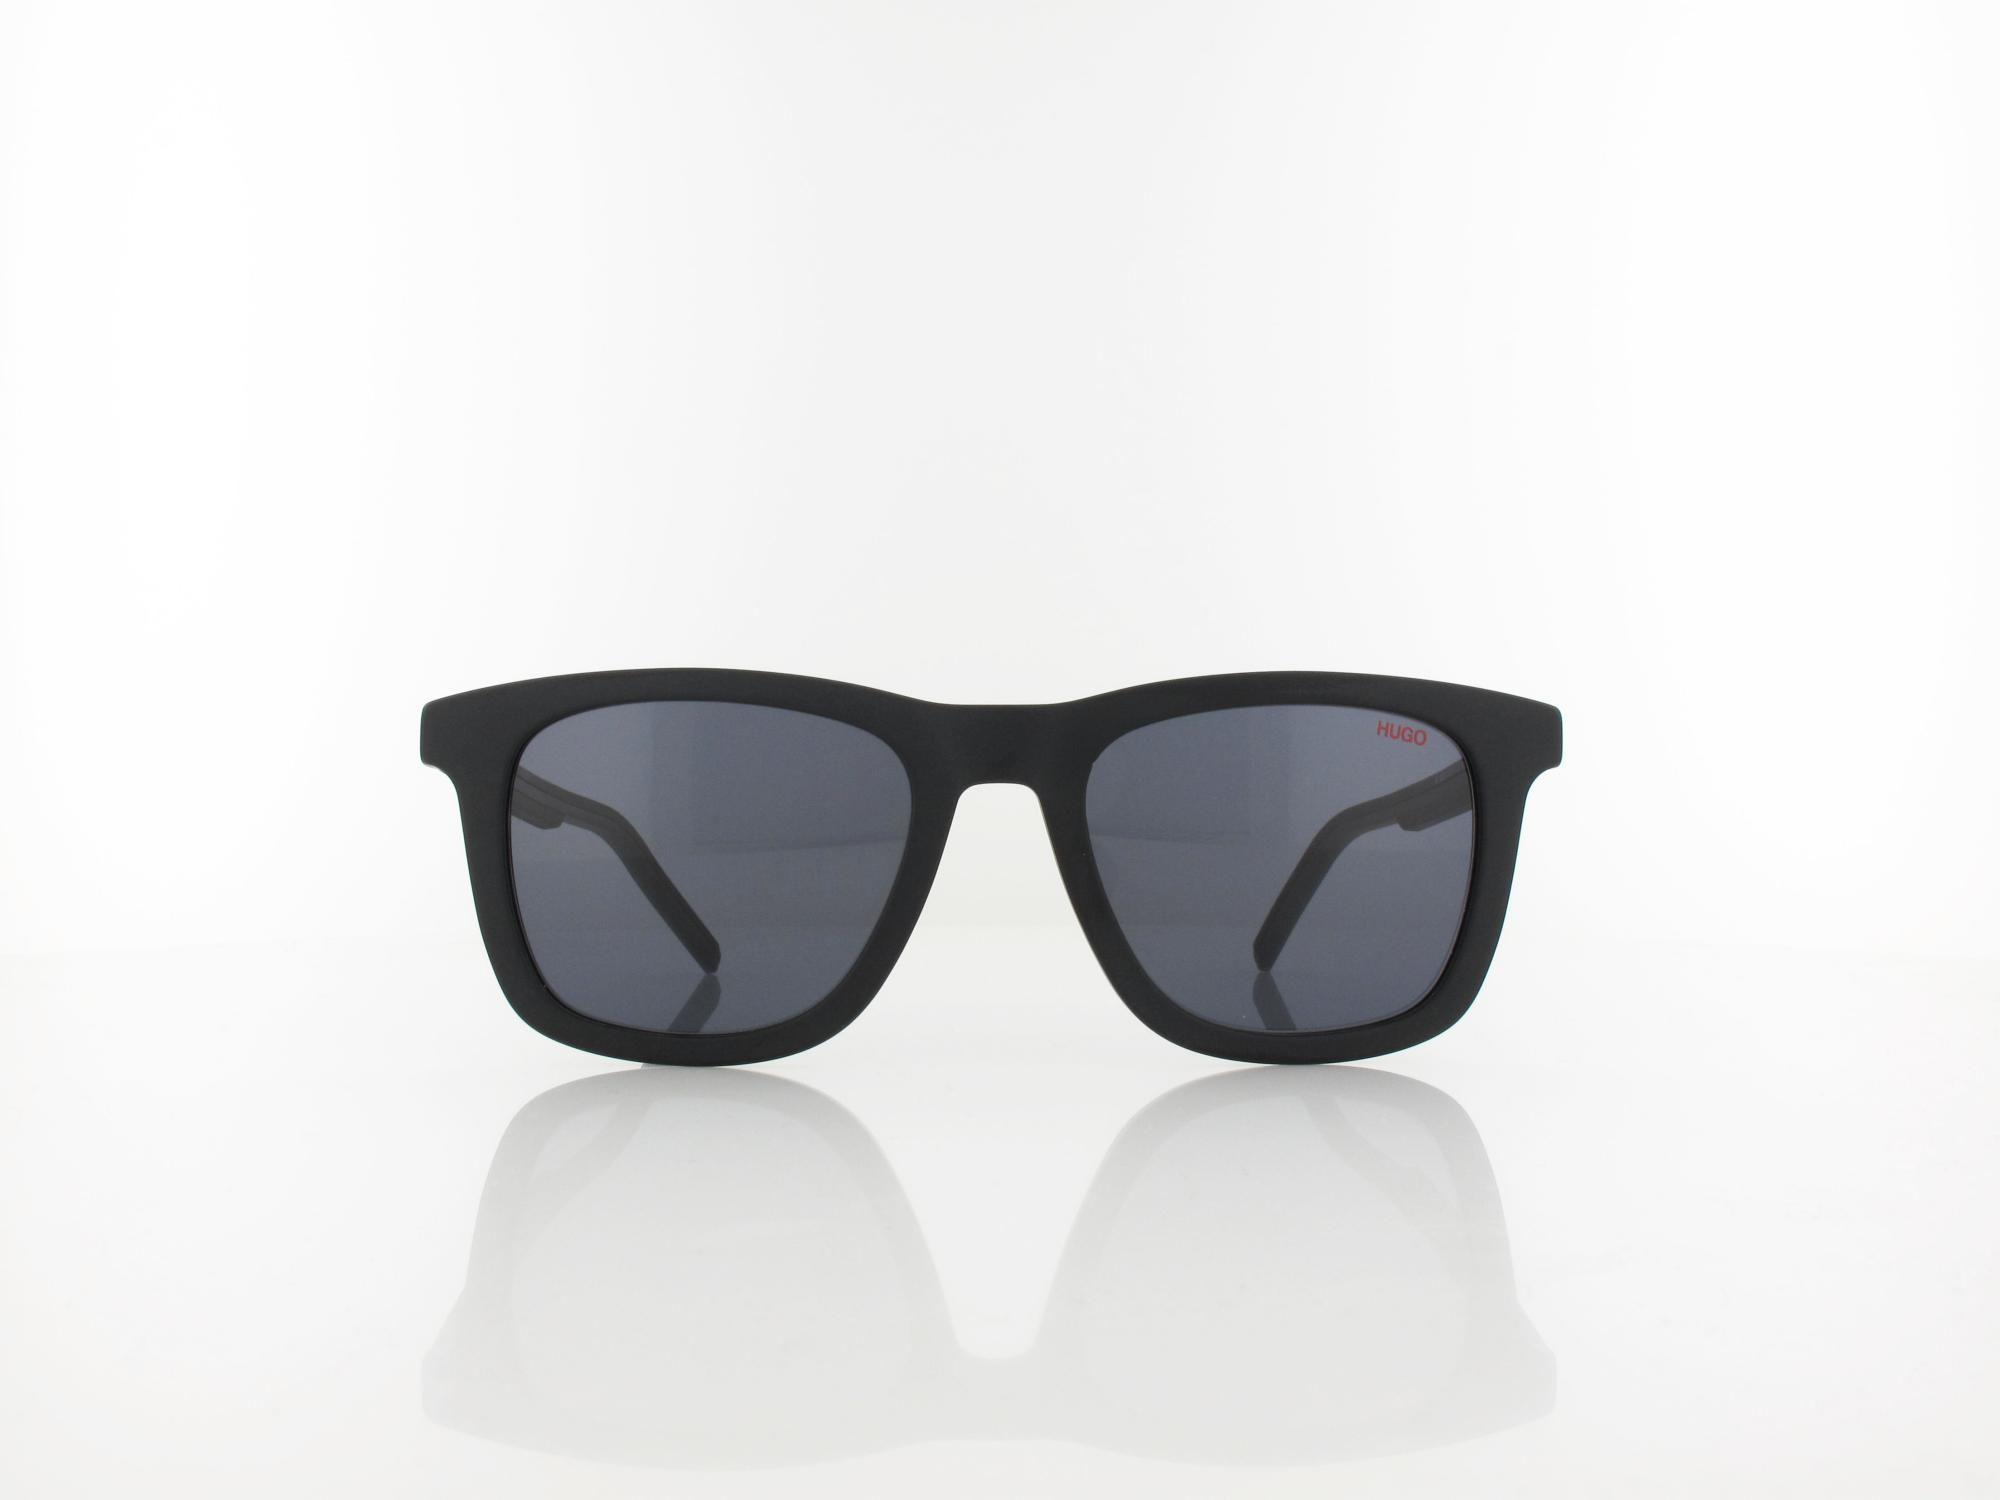 Hugo | HG 1065/S 003/IR 51 | matte black / grey